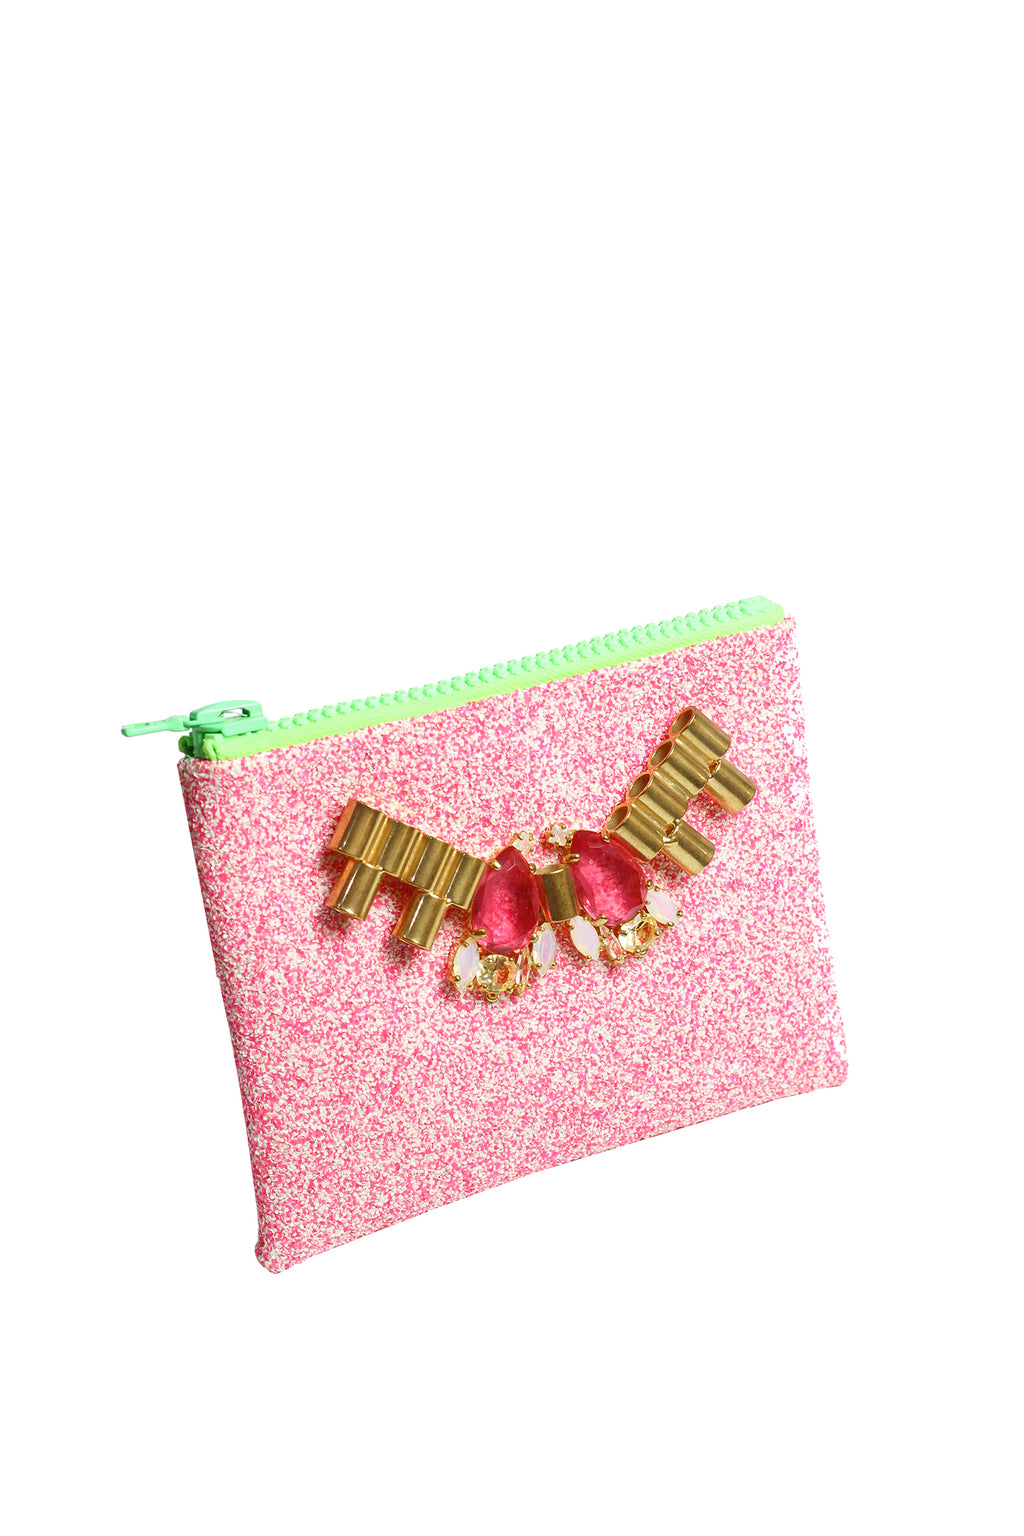 Mawi - Small single glitter clutch w/metal tubes&teardrop crystals11